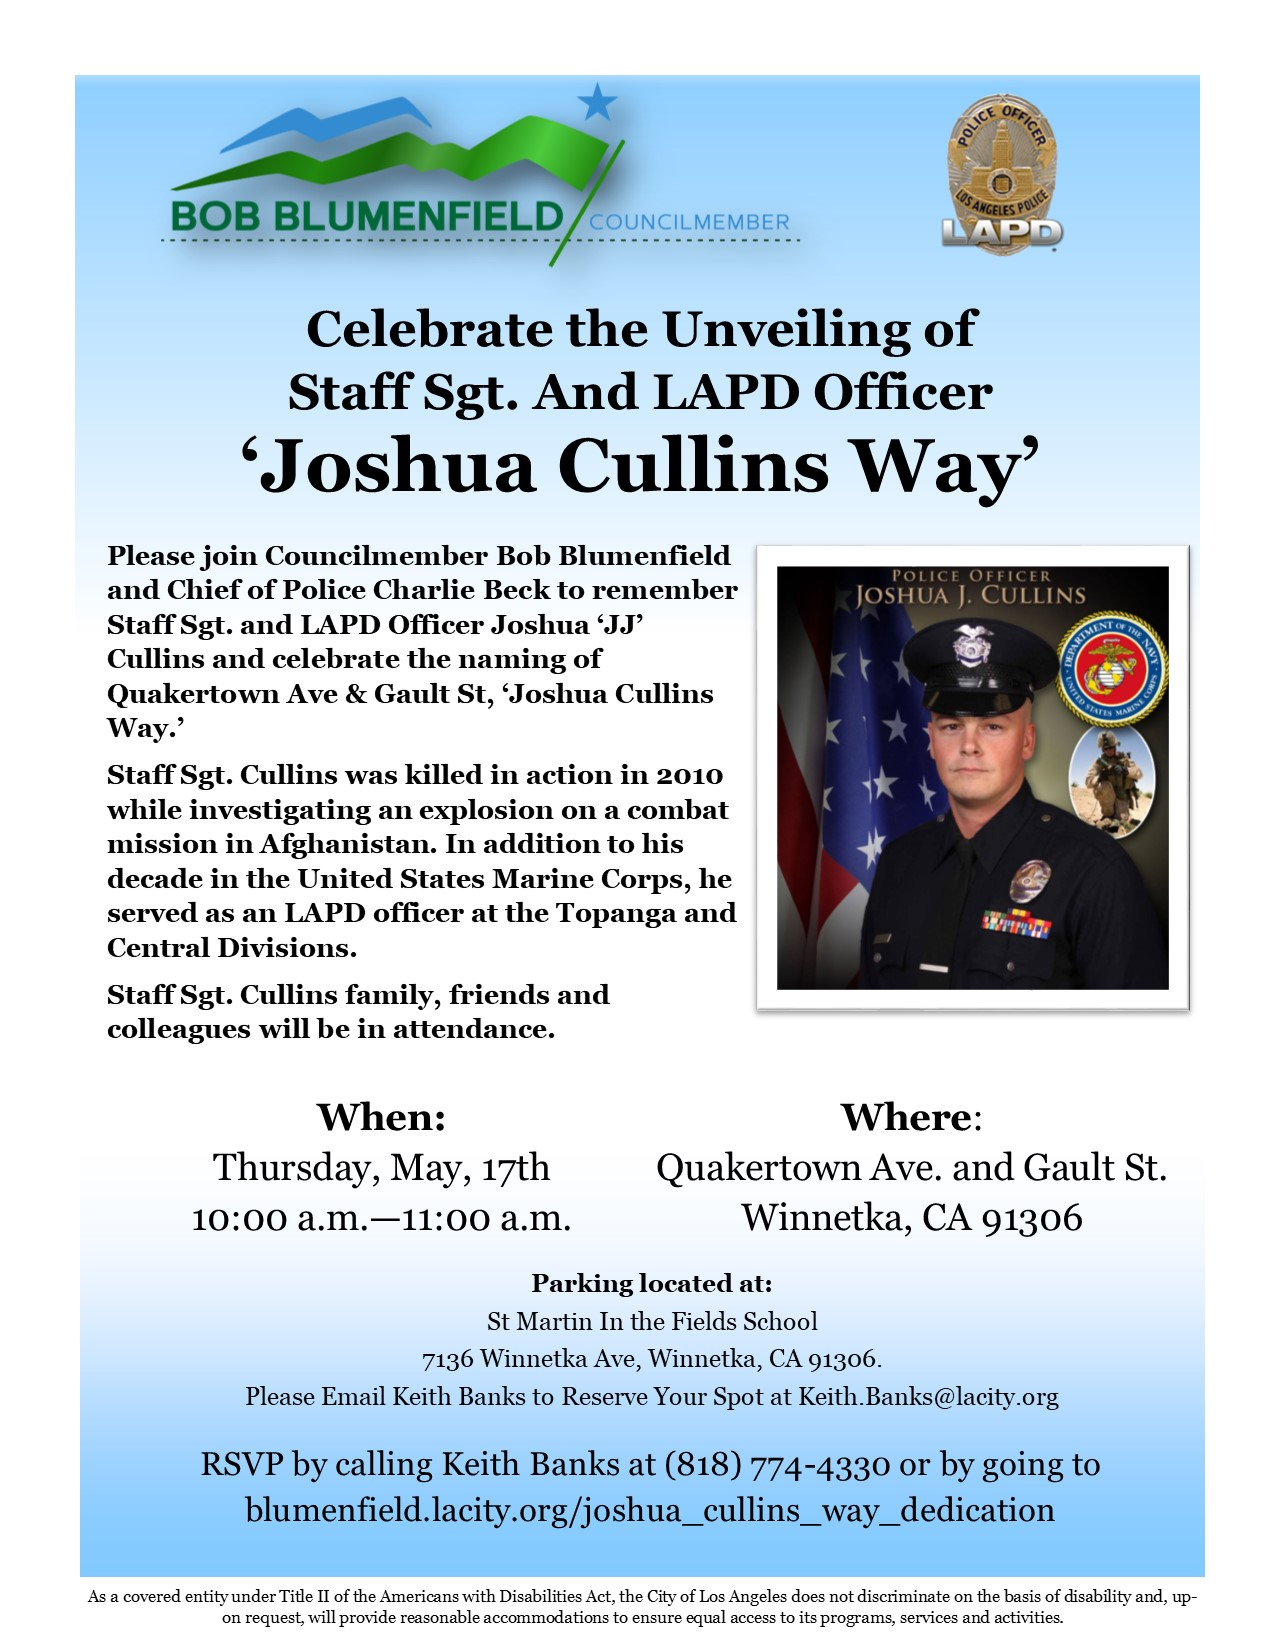 Joshua_Cullins_Way_May_17.2018_flyer_draft_1_(military).jpg